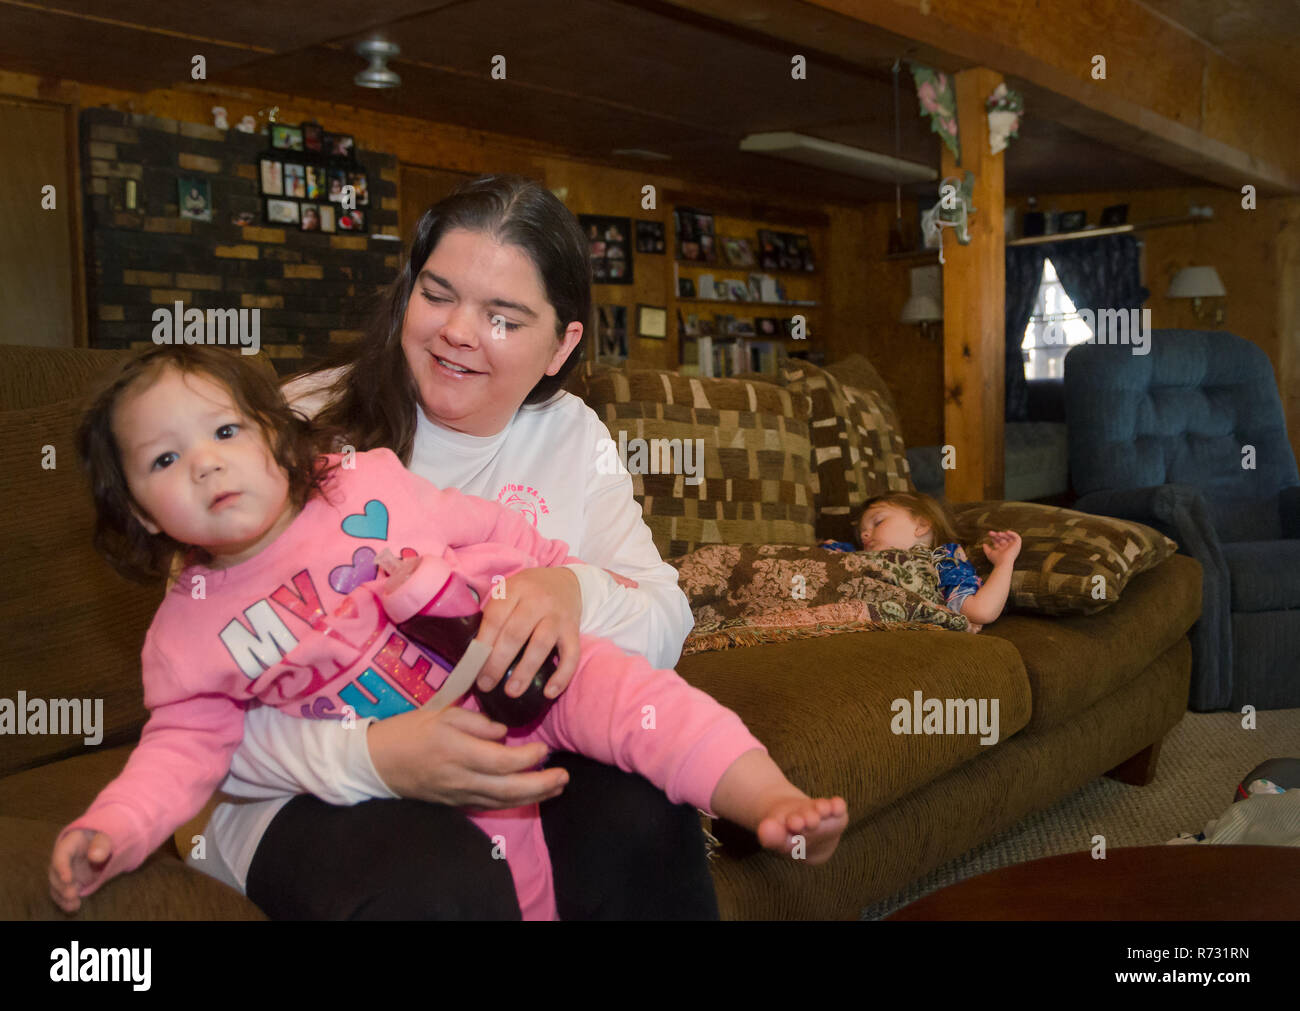 Former day care worker Sara Morales holds her daughter, 18-month-old Carleigh Morales, March 4, 2016, at her home in Loxley, Alabama. Stock Photo